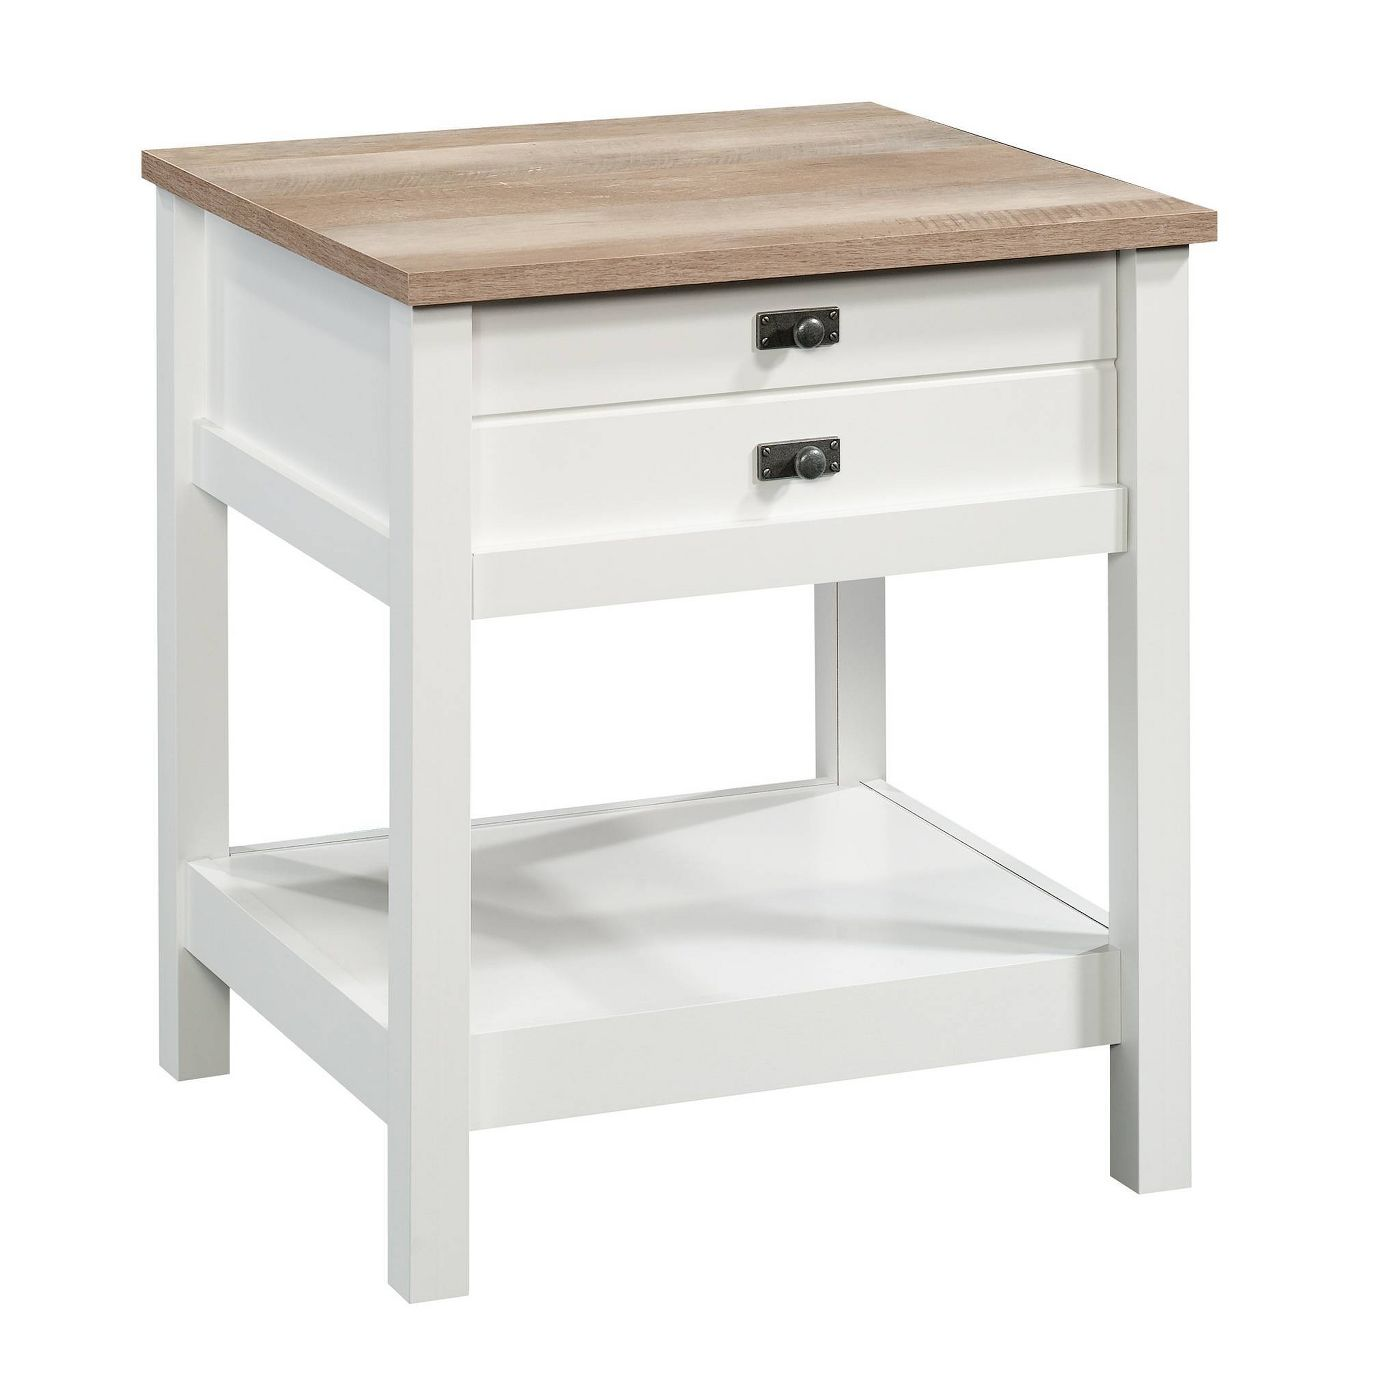 Cottage Road Nightstand - Sauder - image 1 of 5